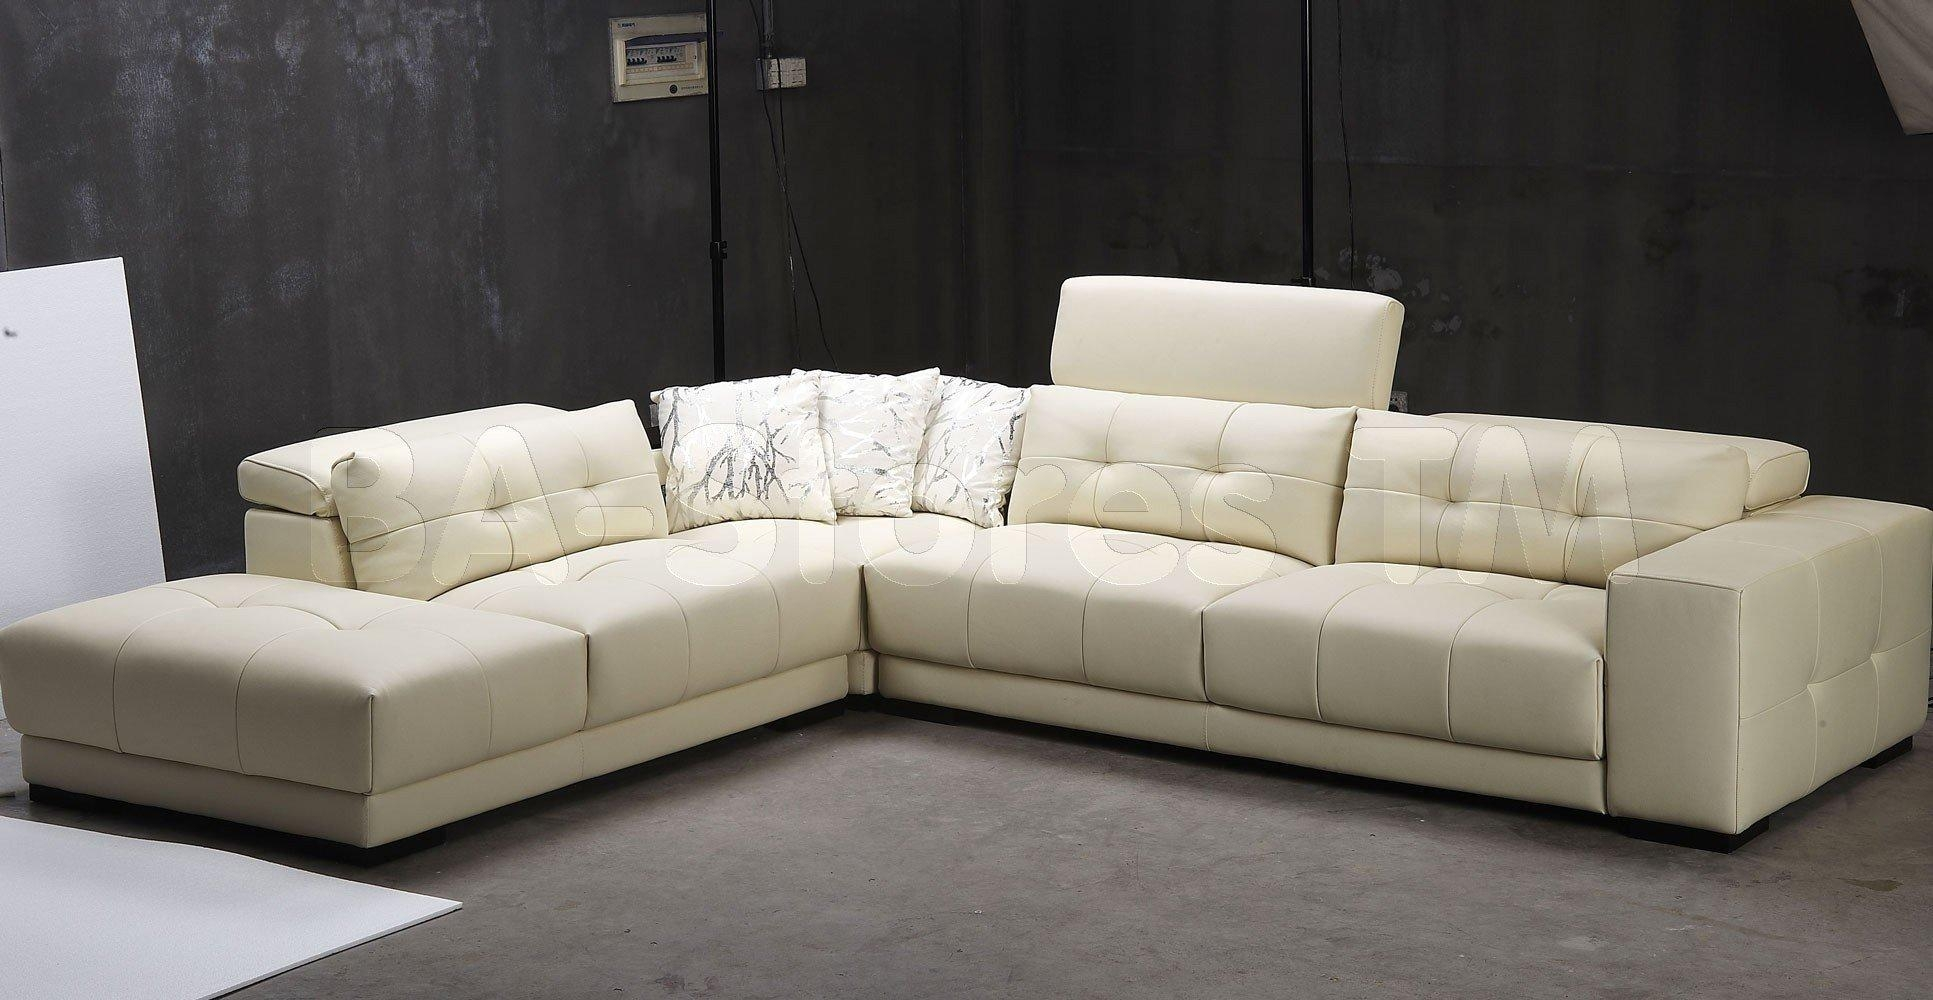 Cream L Leather Floating Sofa On Grey Carpet Of Minimalist White With Floating Sofas (Image 10 of 20)